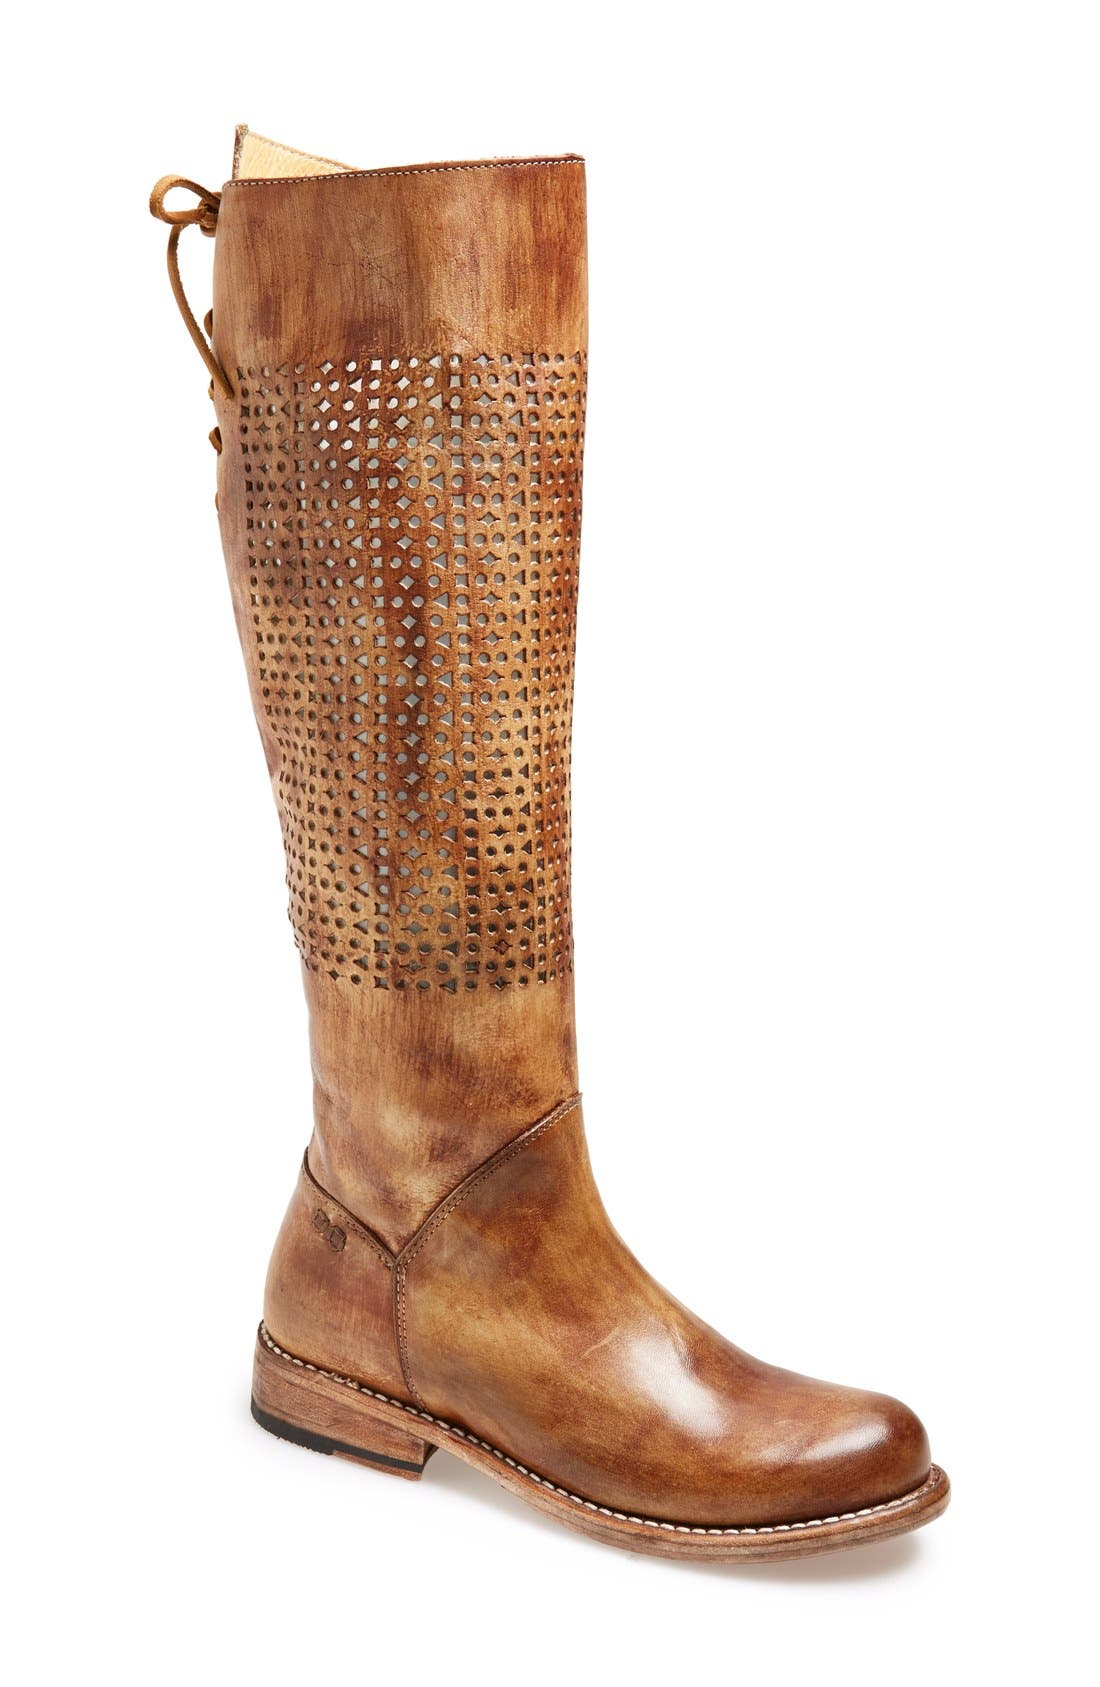 BED STU 'Cambridge' Knee High Leather Boot